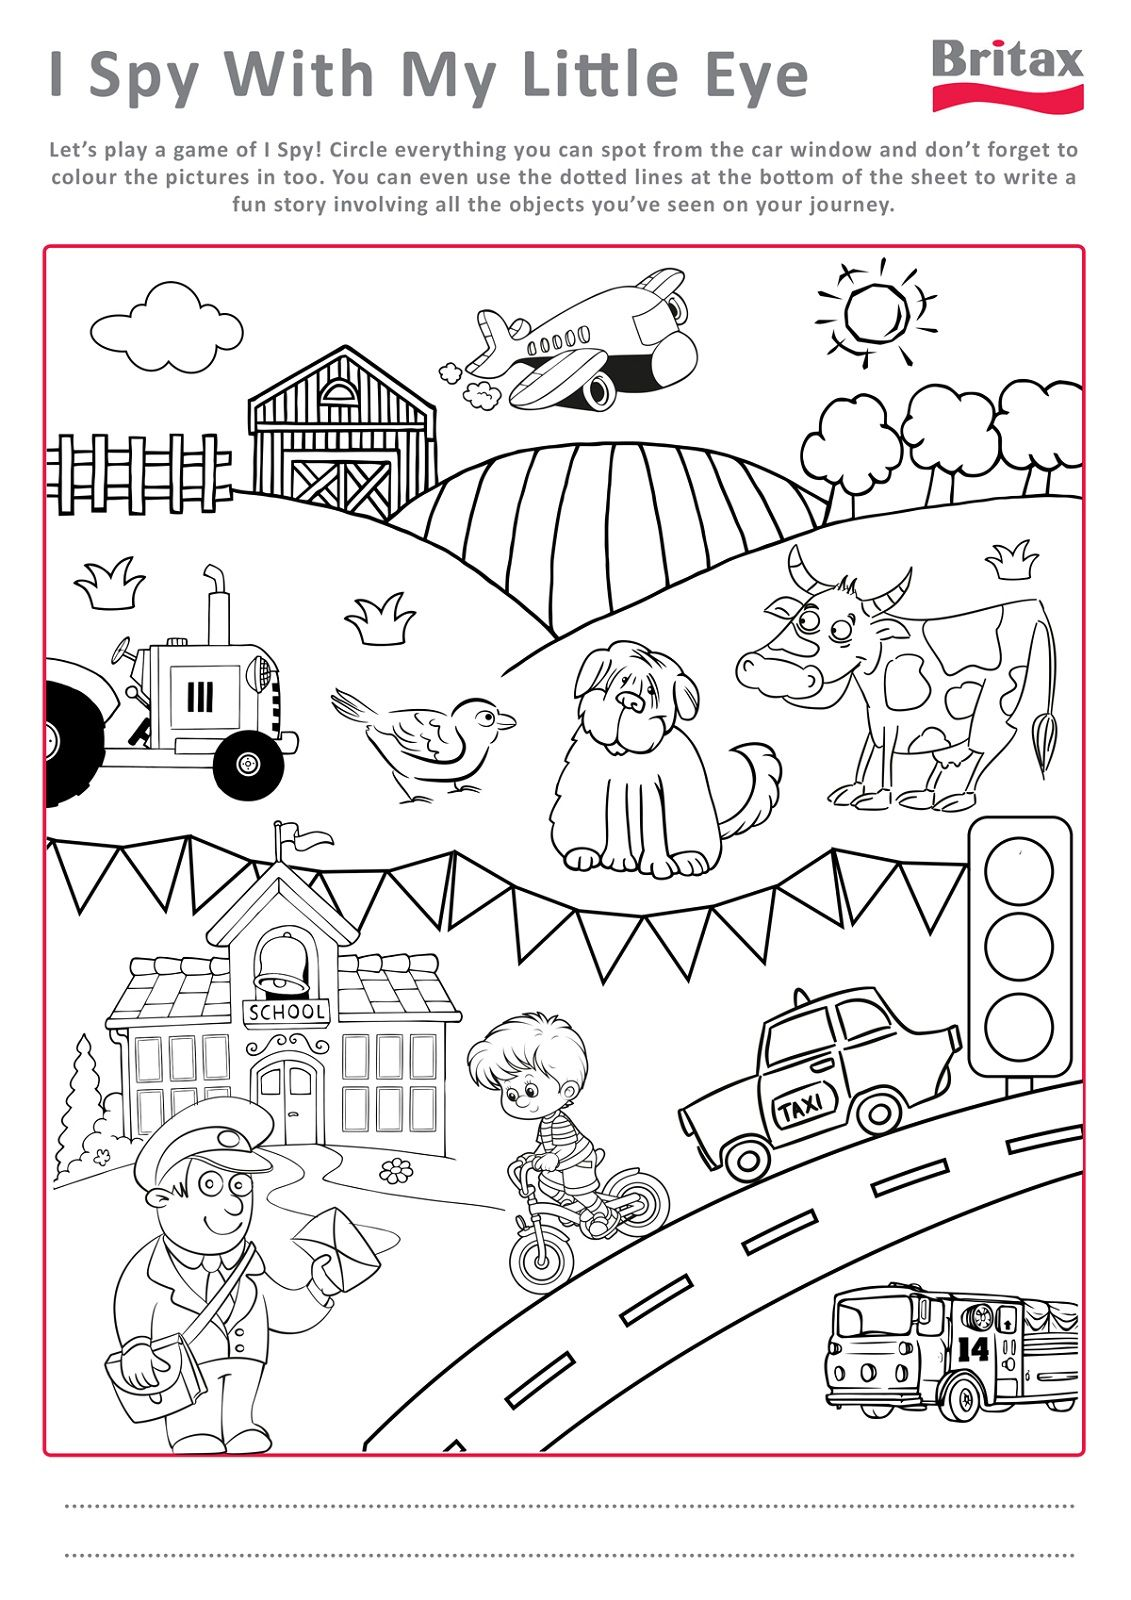 Printable Activity Sheets For Kids With Images